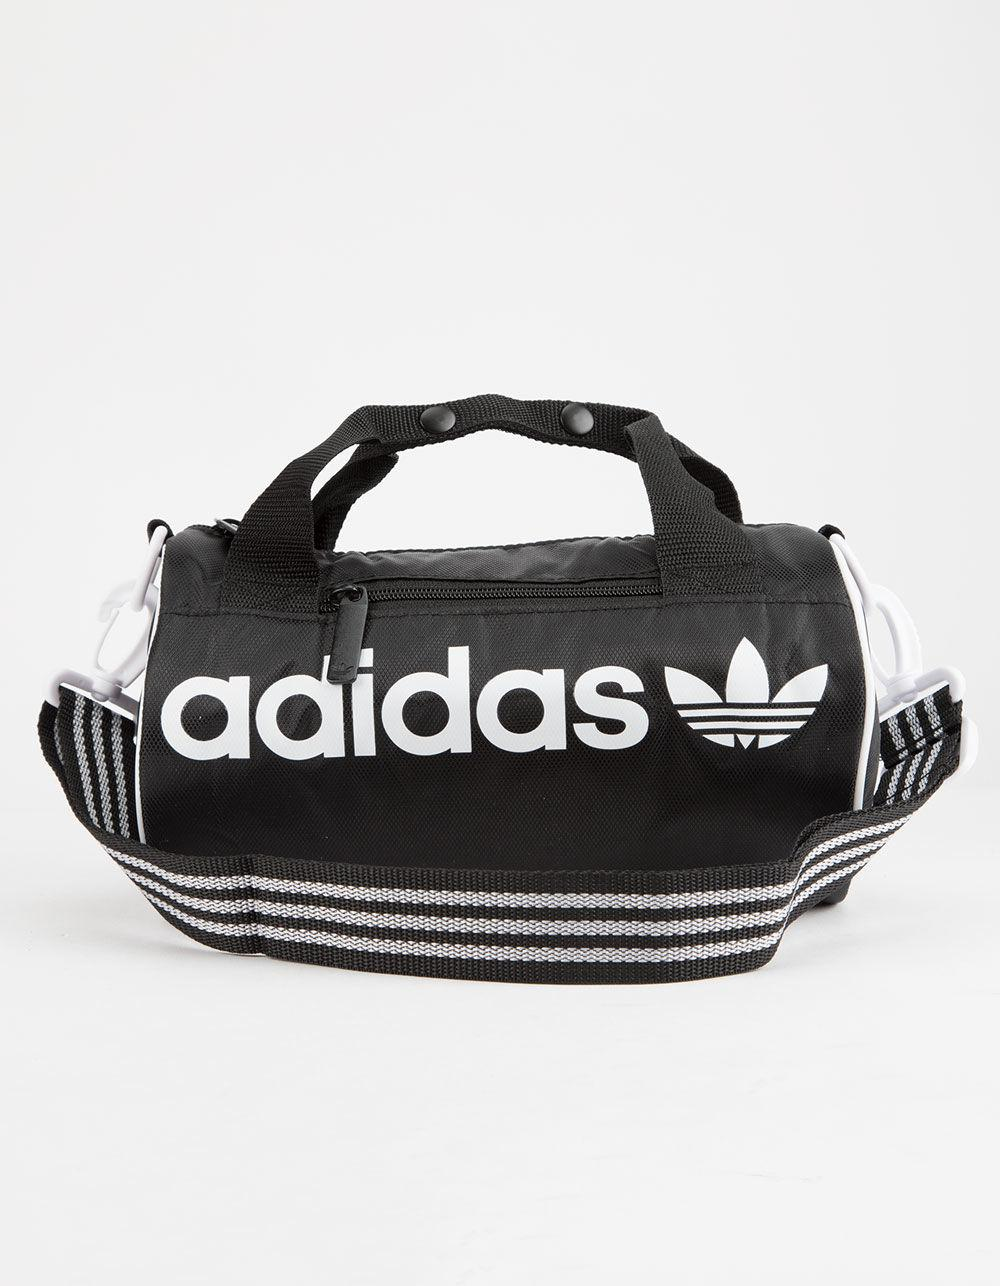 ... online retailer b76c6 70997 Adidas - Black Originals Santiago Mini  Duffel Bag for Men - Lyst ... d291201655f2c